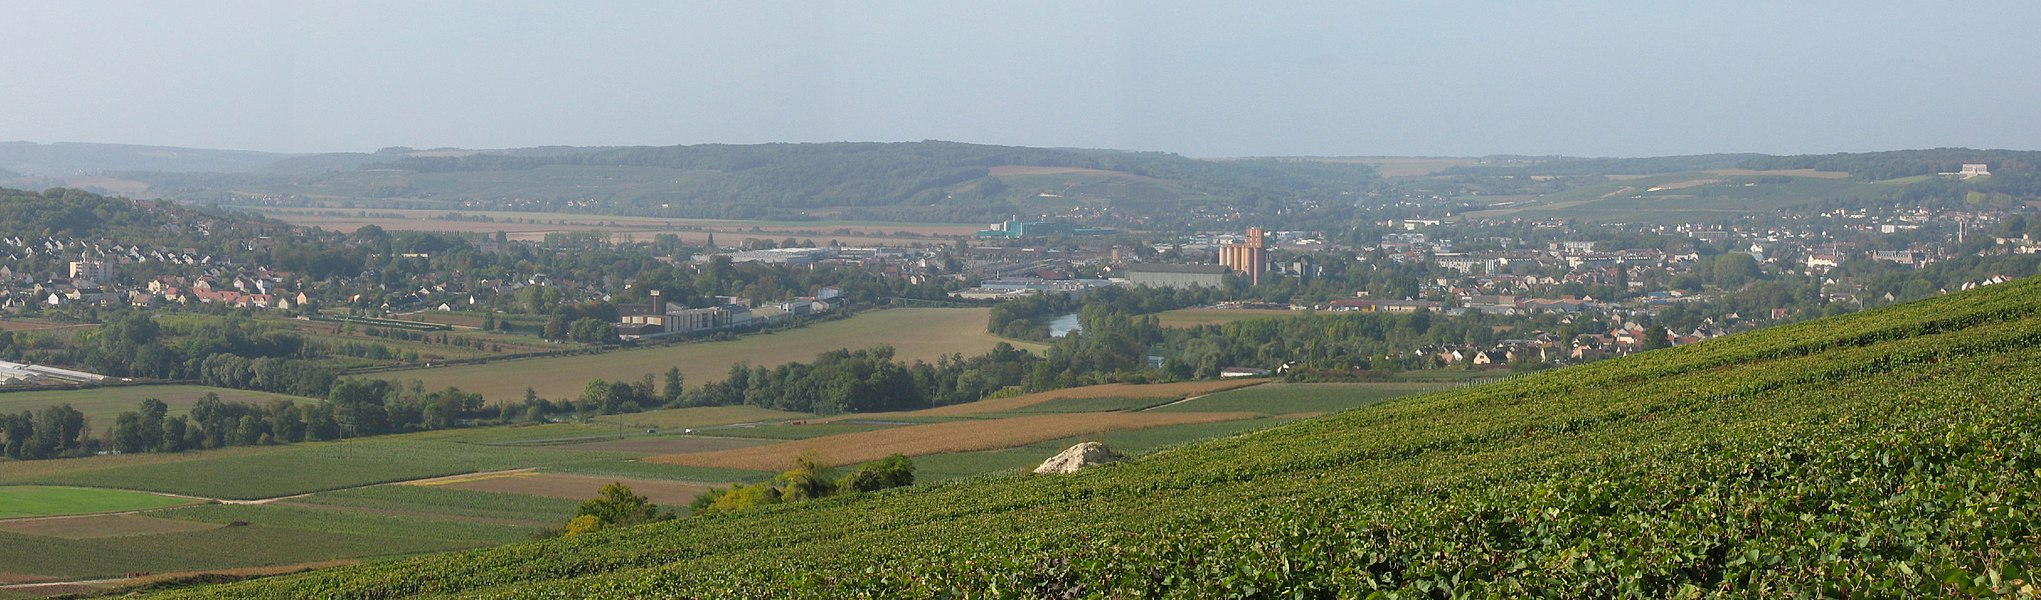 Panorama of the Marne valley with view of the city of Château-Thierry. Built from different photos.